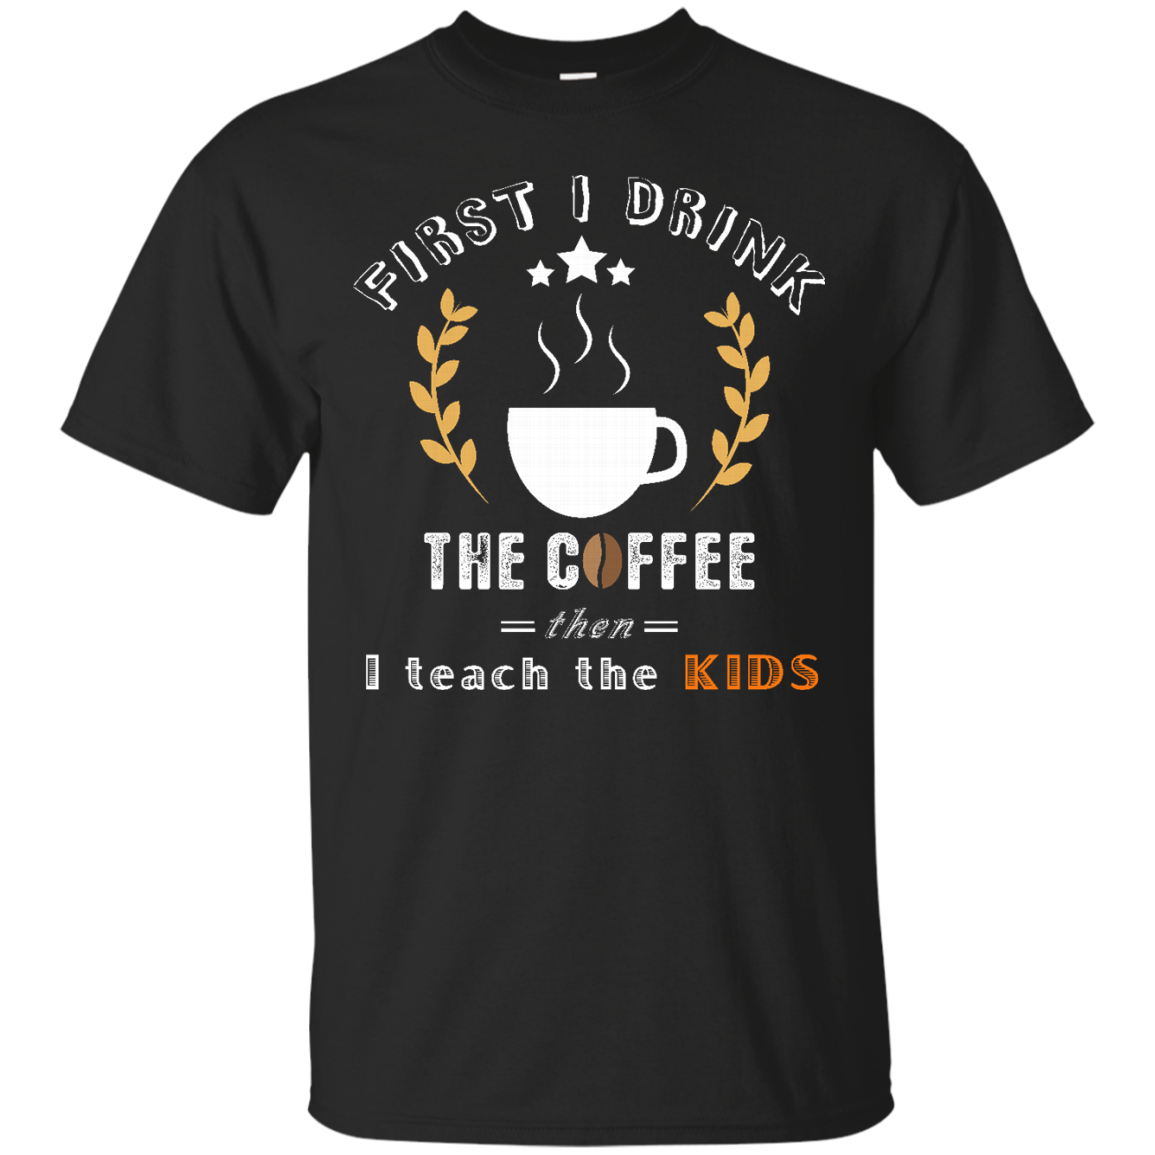 Coffee T shirt First I drink the coffee  Best gift for your friends  your family and every one on their Birthday  Christmas and all holidays